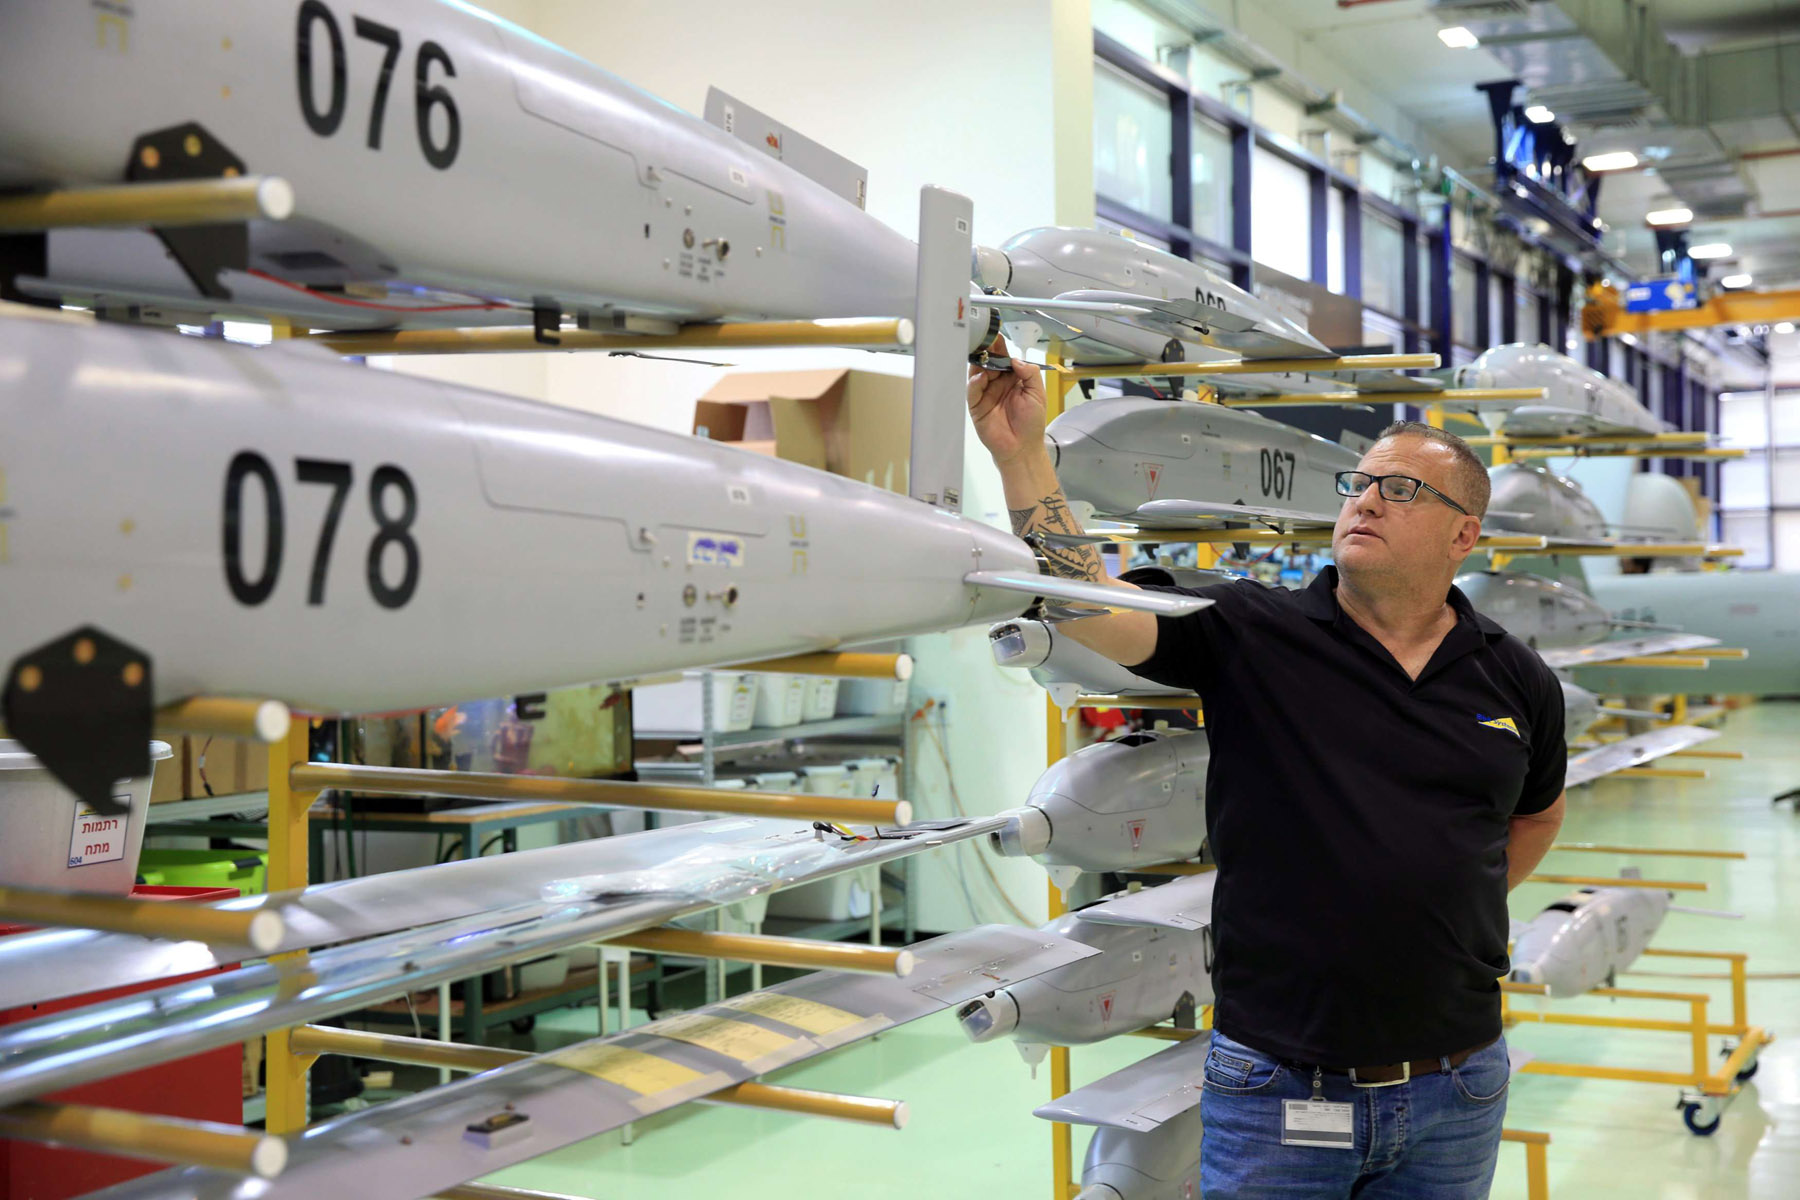 Advanced capabilities. An employee stands next to unmanned aerial vehicles (UAVs) at the Elbit Systems Ltd. drone factory in Rehovot, Israel.  (Reuters)